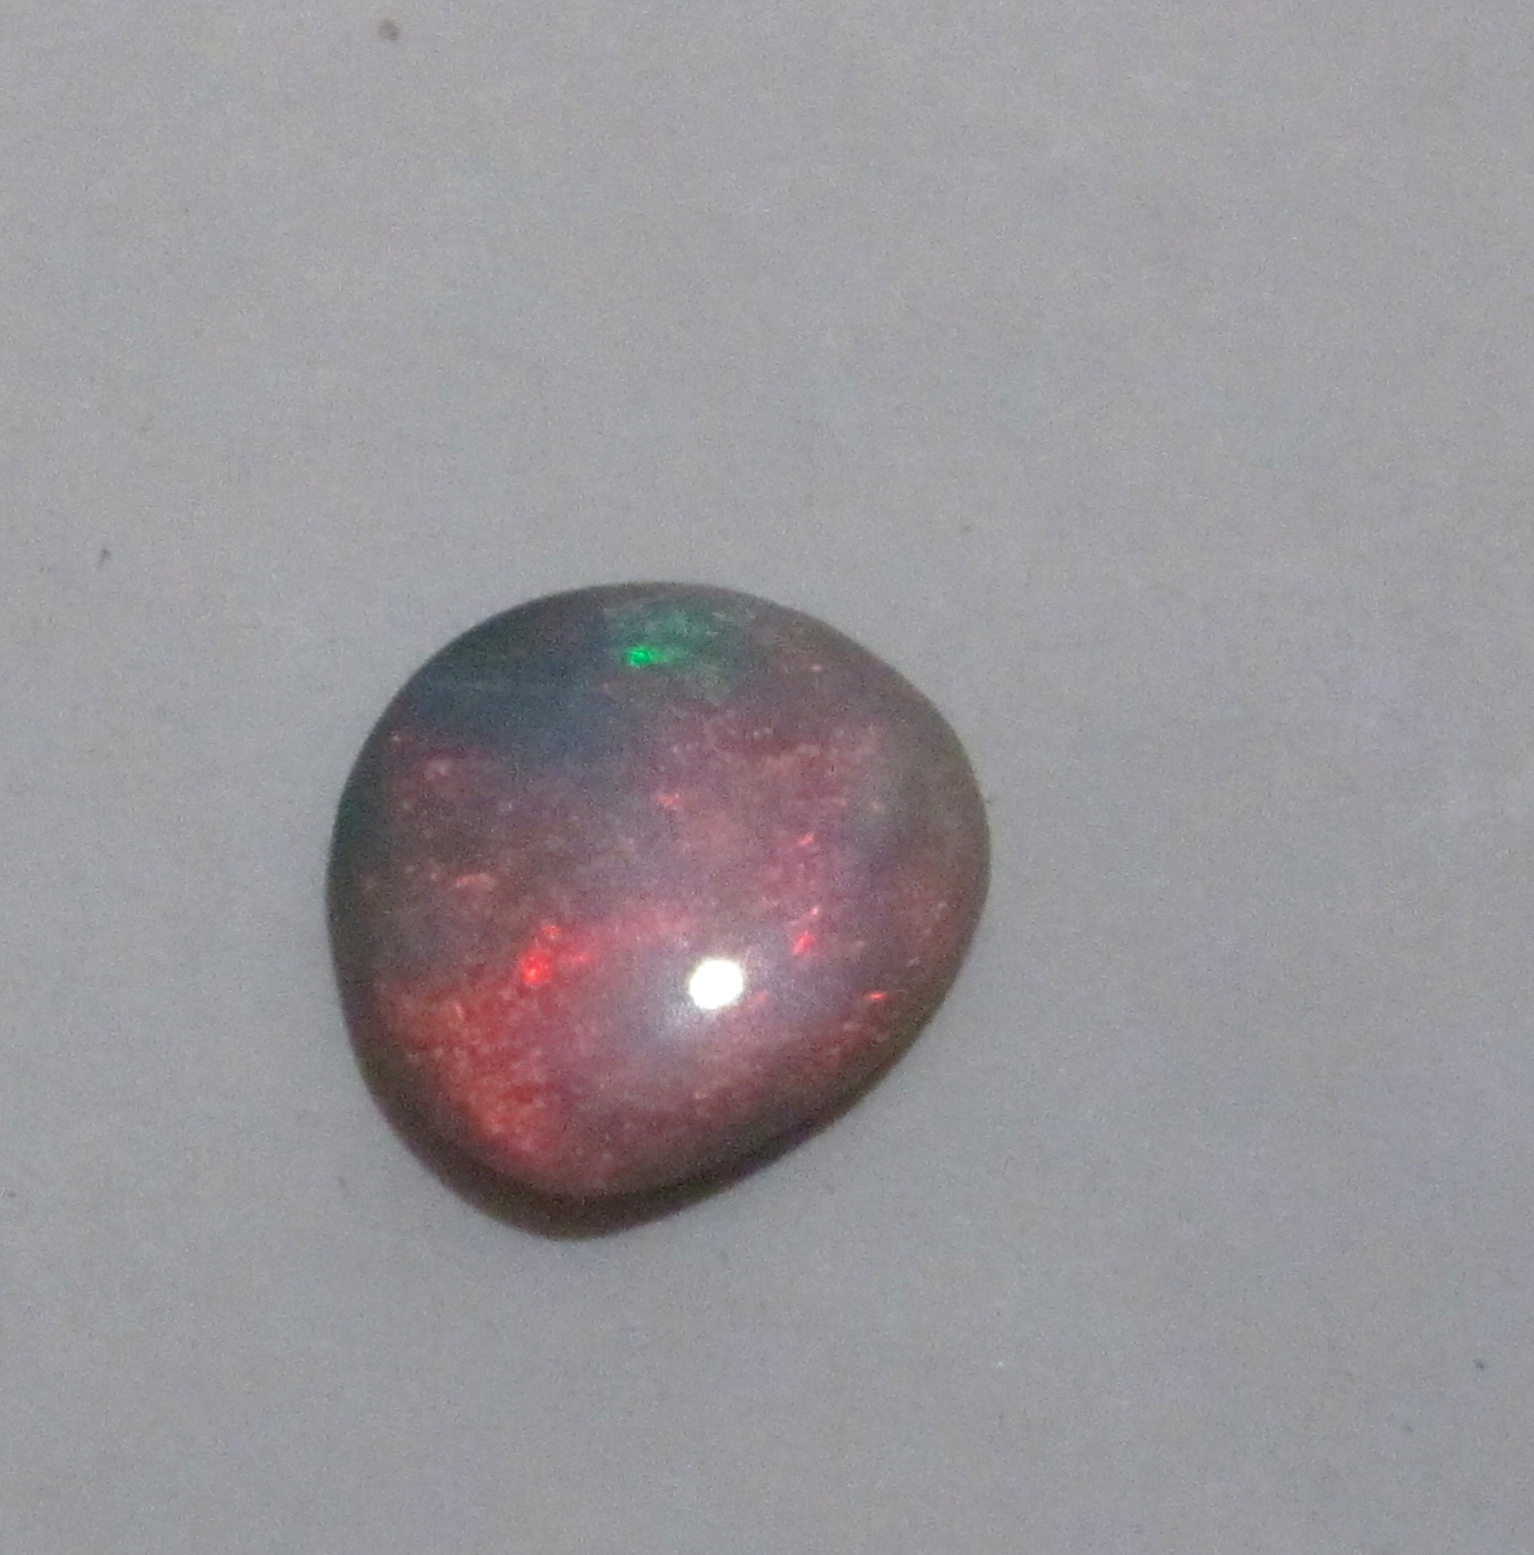 sale opal gemstones,opals for sale,opals sale, australian opals for sale,opal for sale, black opals for sale